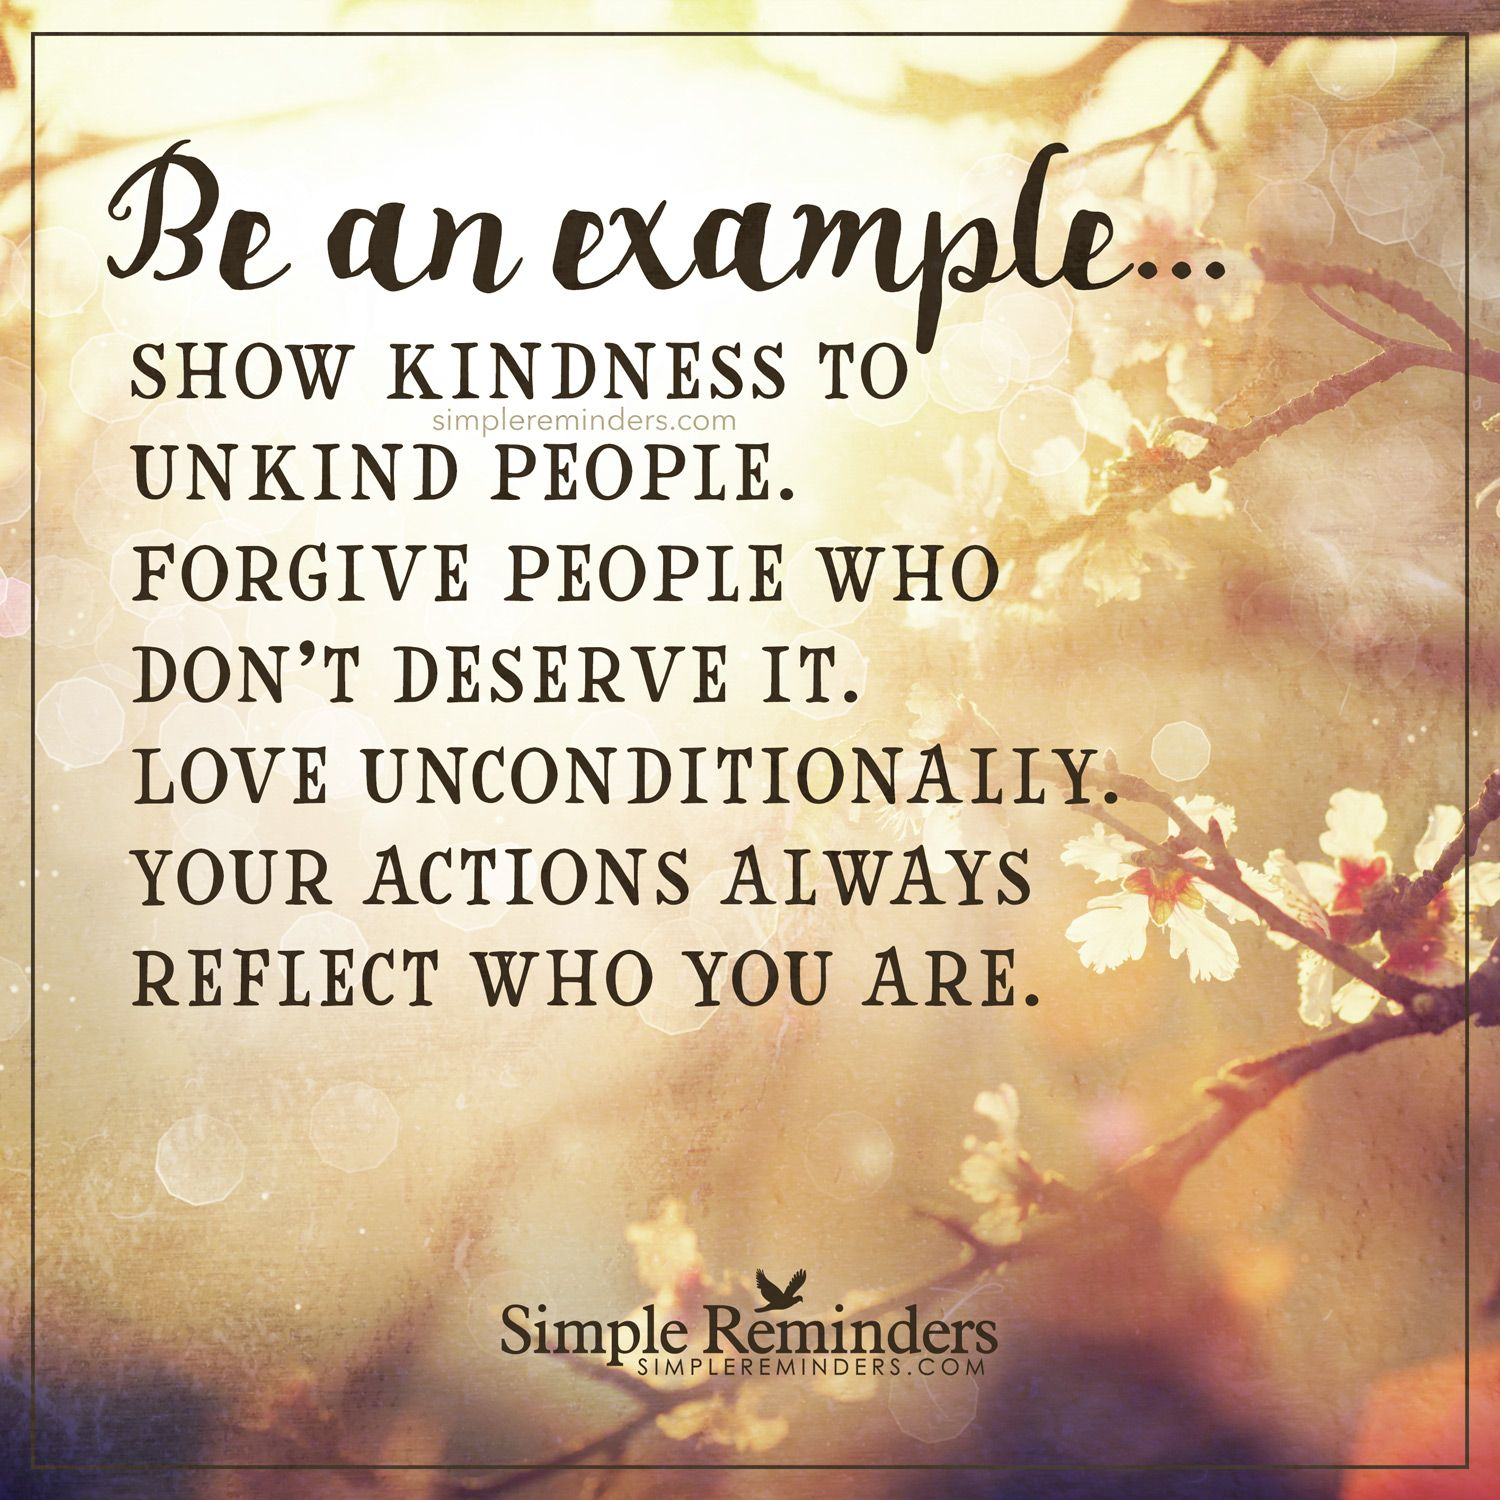 Your actions always reflect who you are Be an example ...